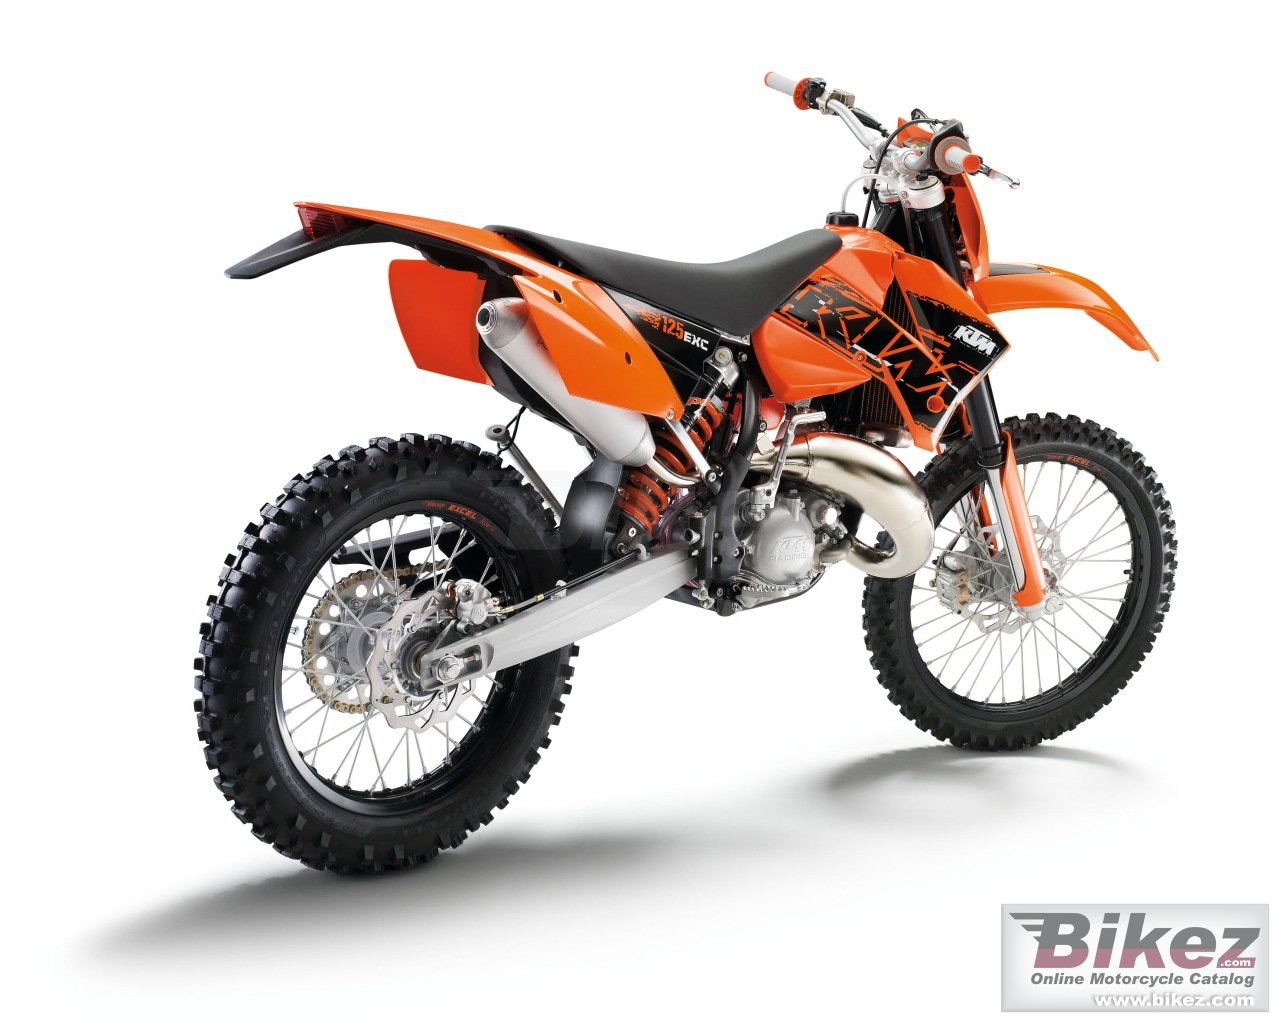 Big .free.fr 125 exc picture and wallpaper from Bikez.com